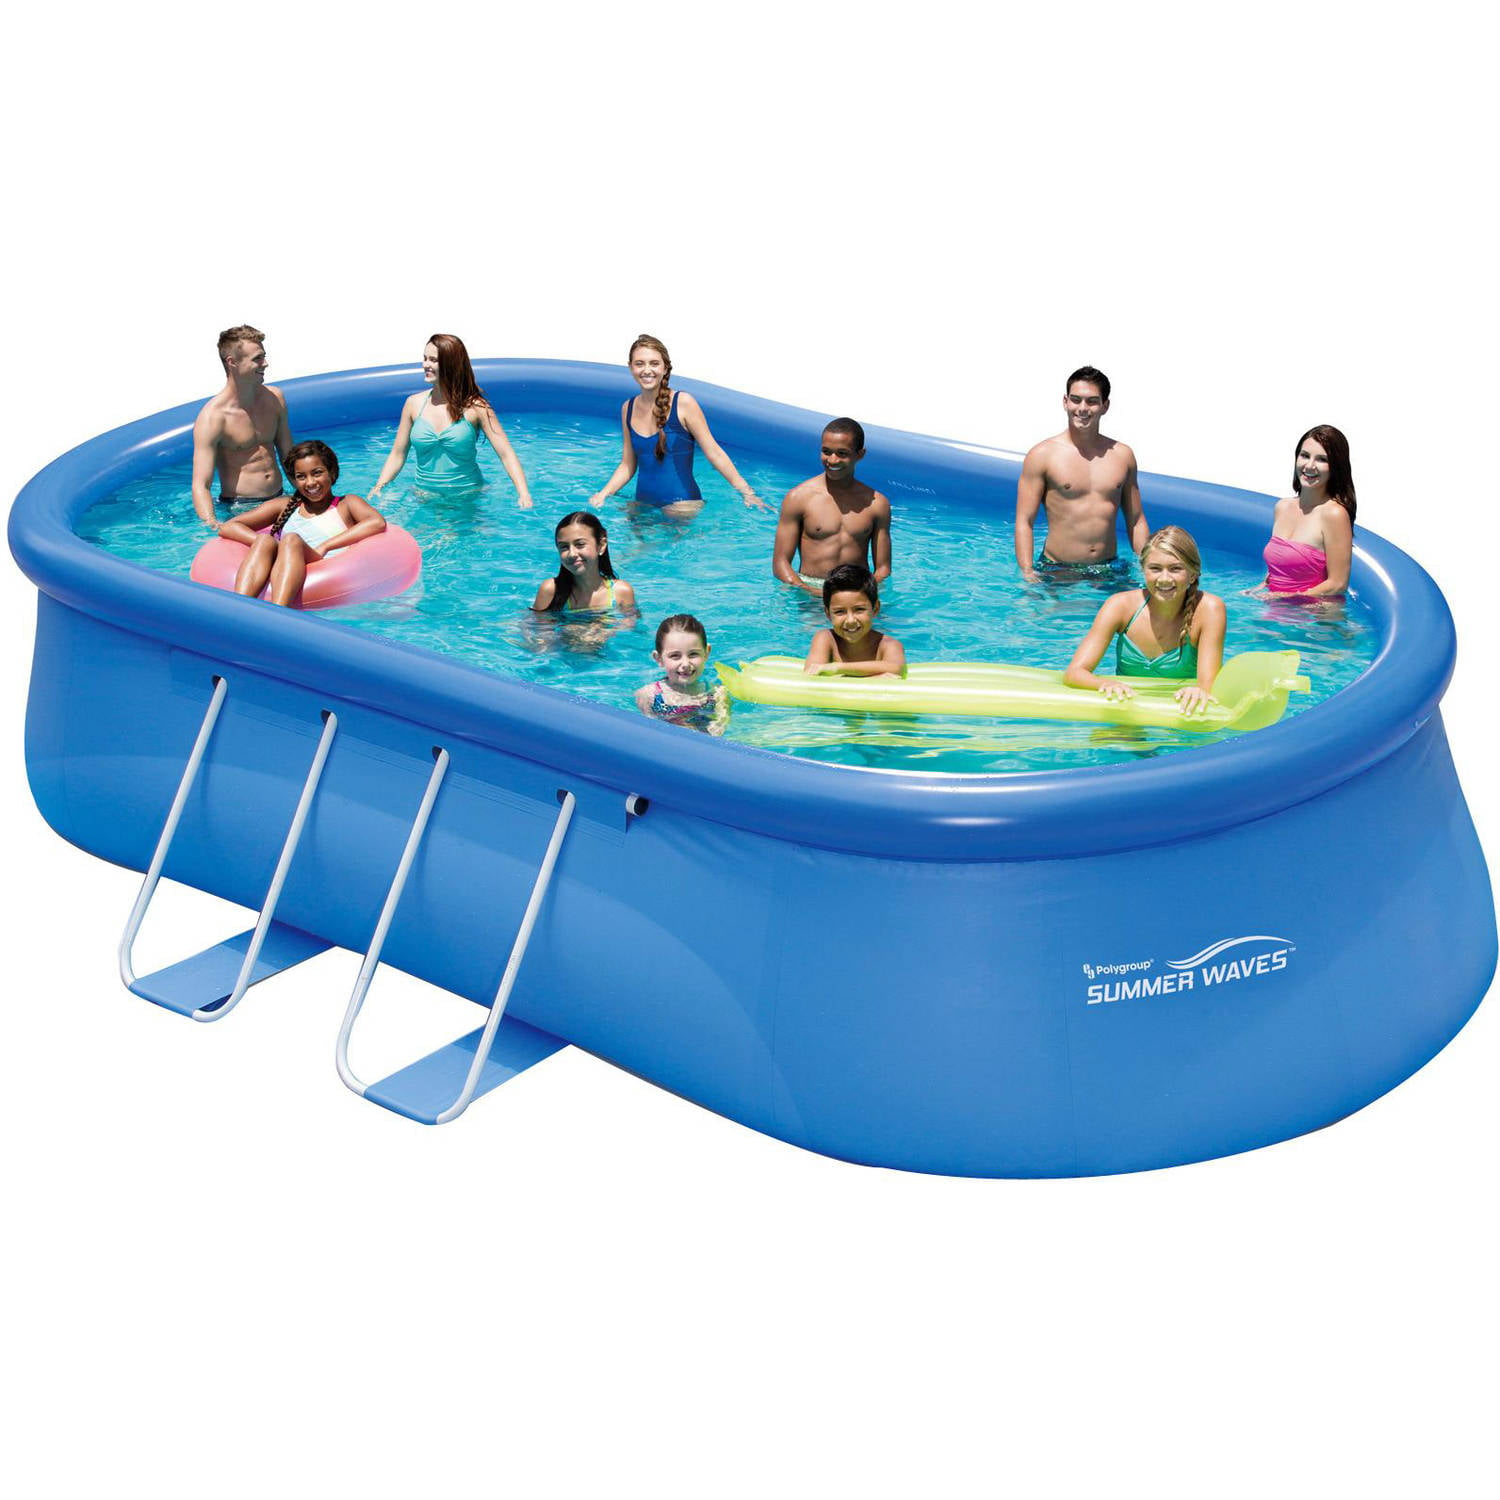 Summer waves 20 39 x 12 39 x 48 quick set oval frame above - Summer waves pool ...